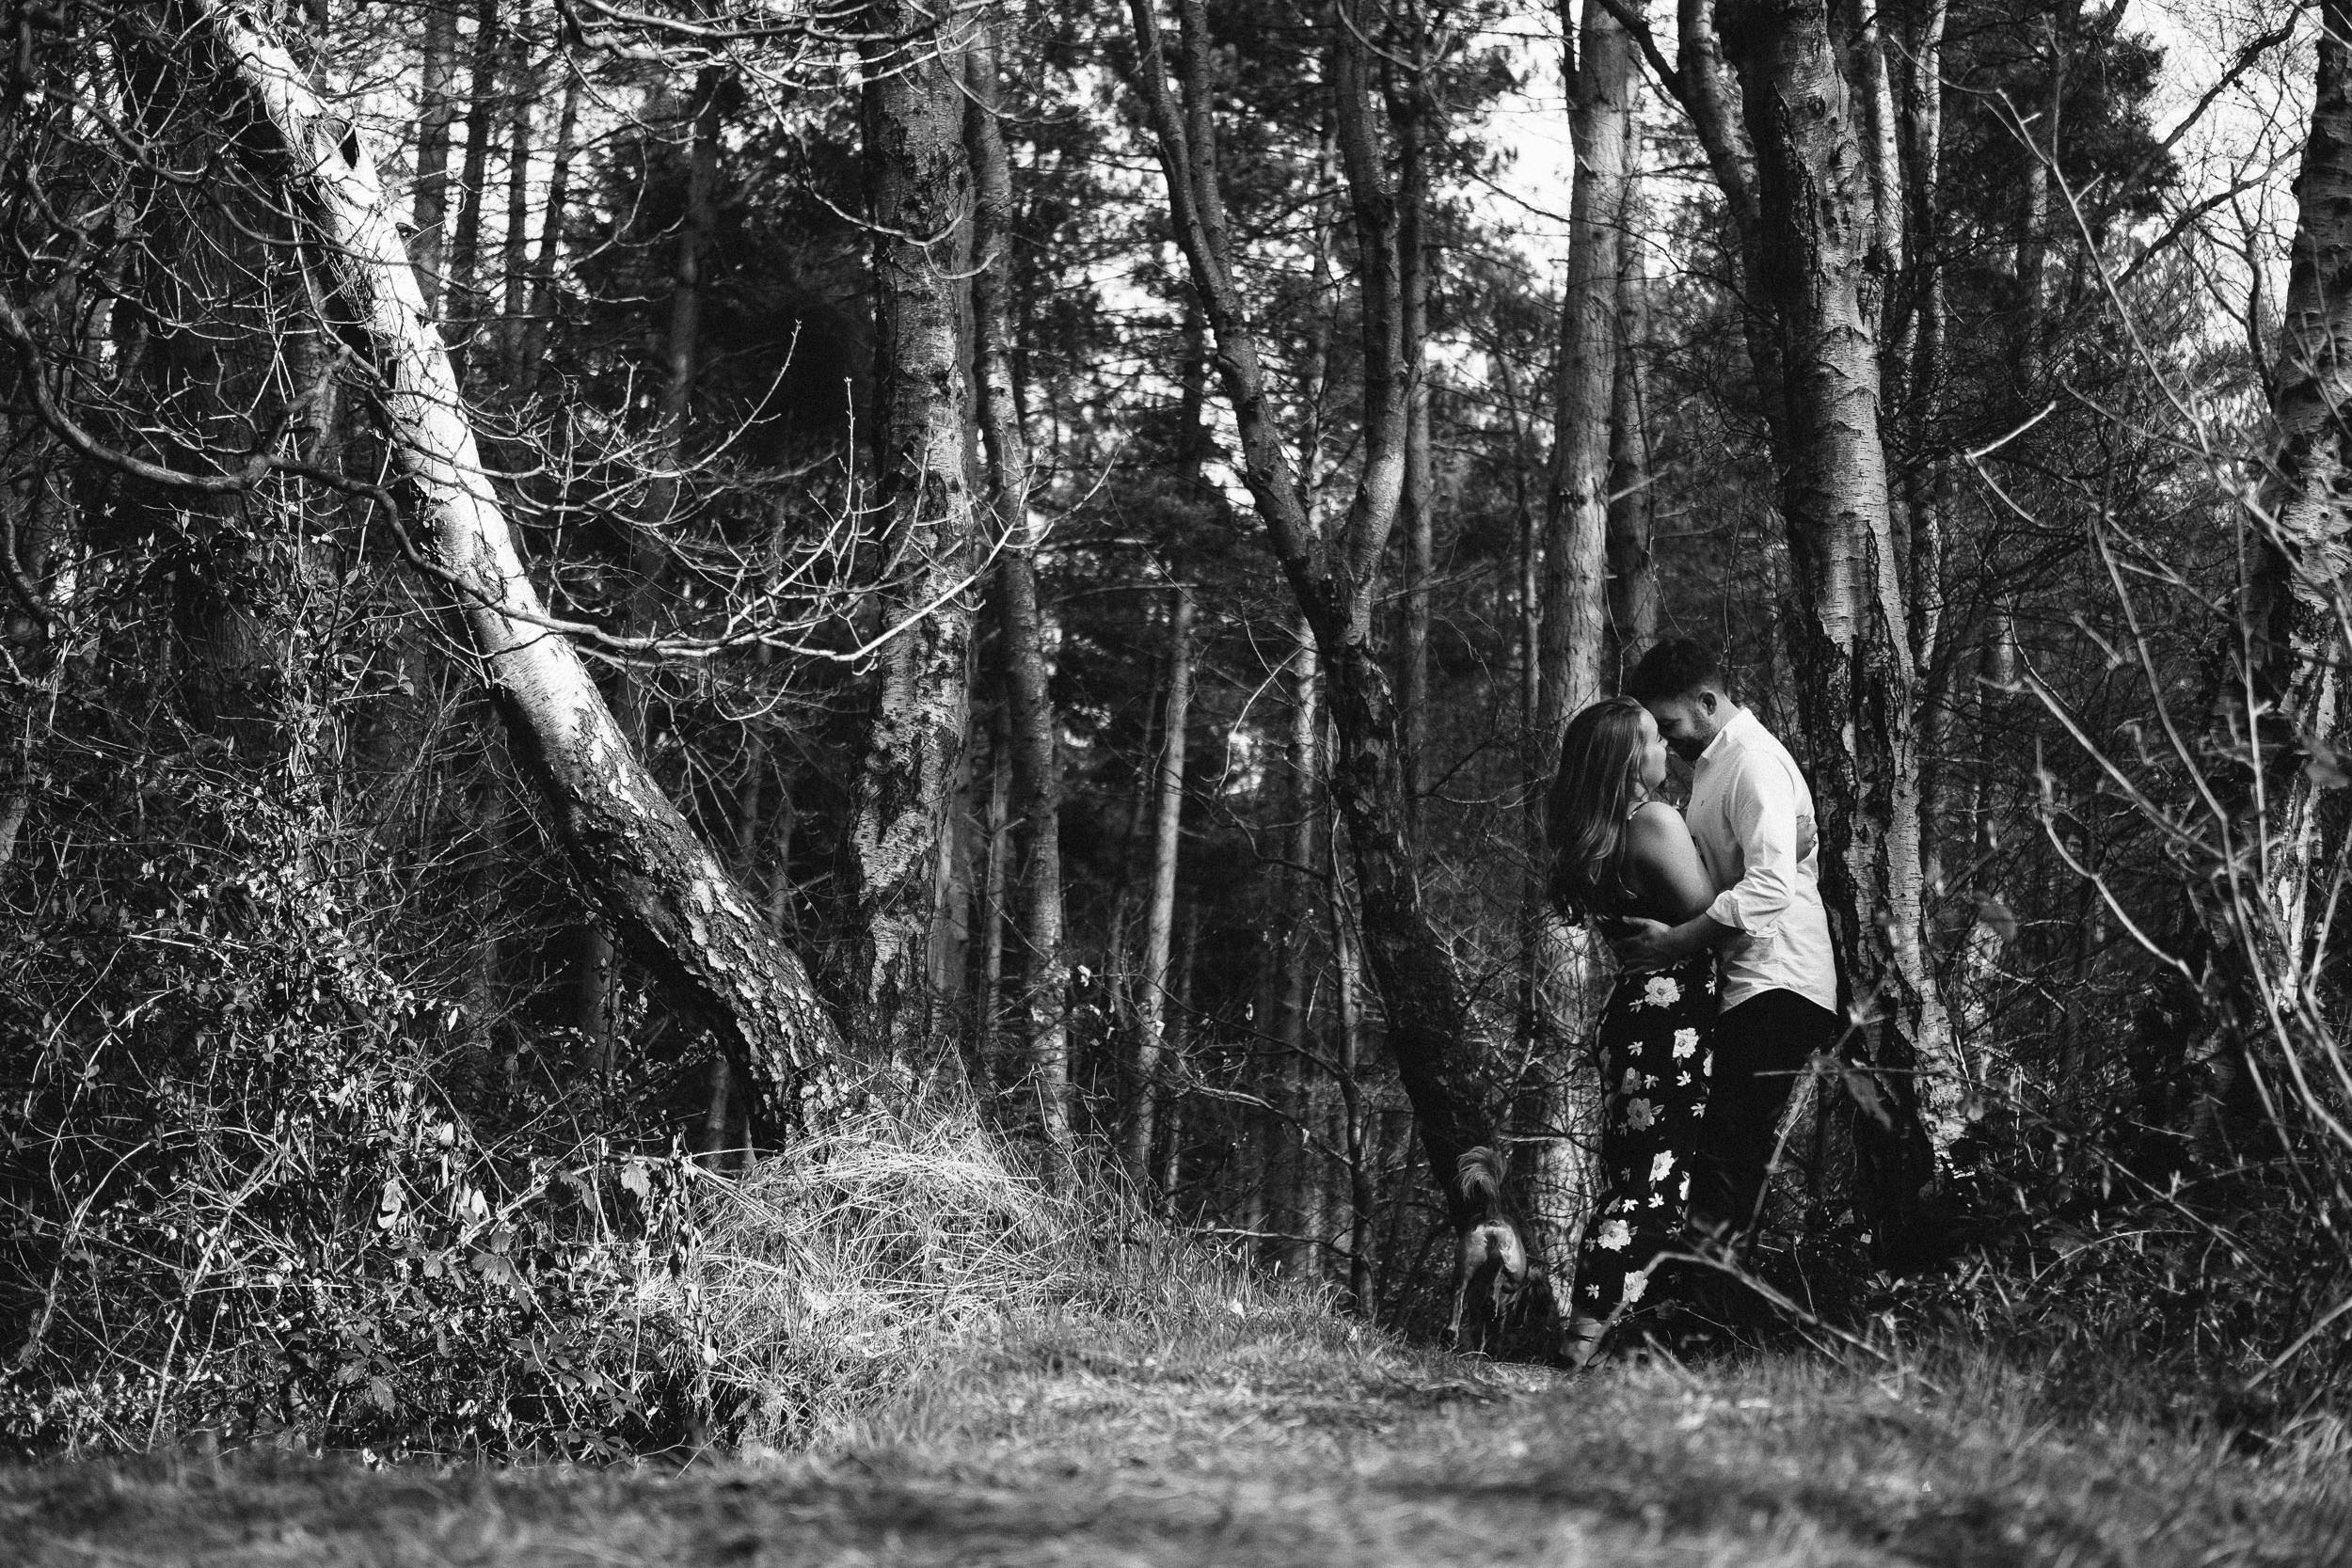 A dramatic black and white photo of a couple embracing in wild woodland